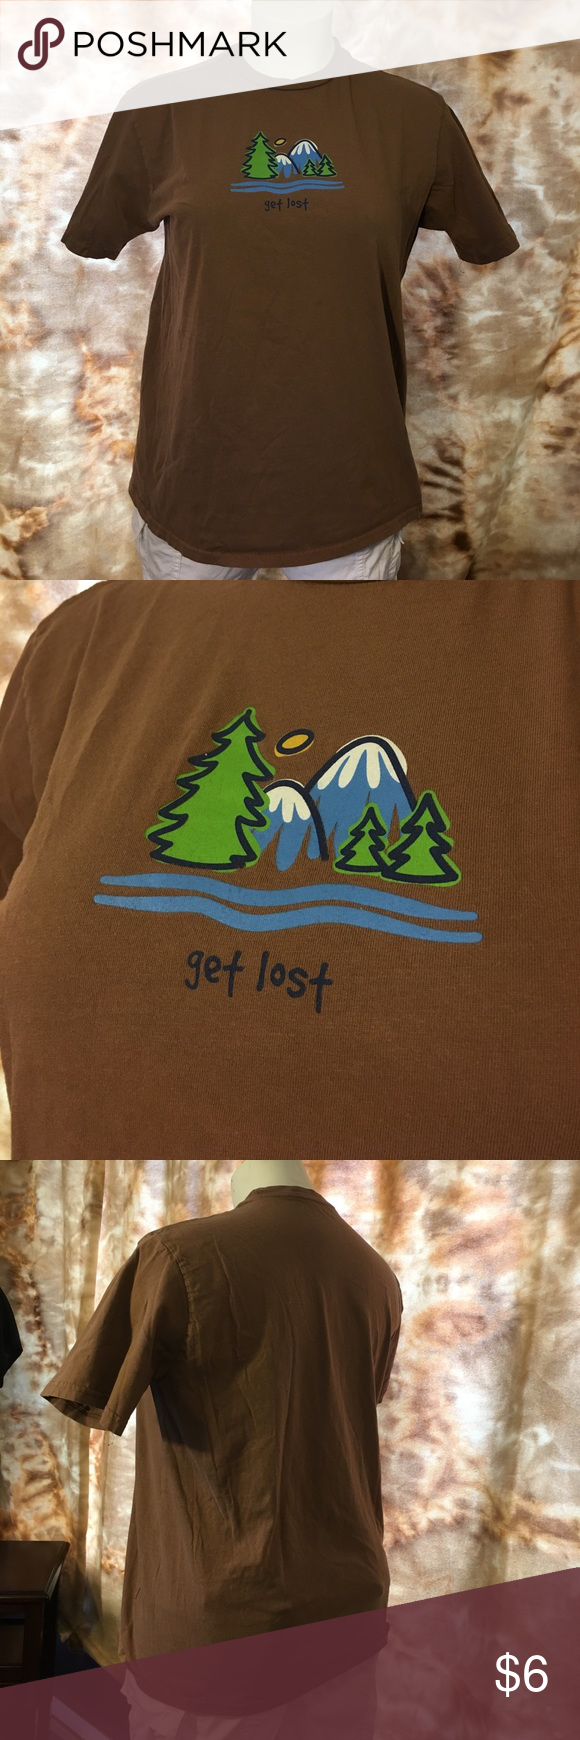 T shirt Cute hiking t-shirt with get lost logo on front. Brown with trees and mountains on front. Cotton. Worn once. postivitees Tops Tees - Short Sleeve